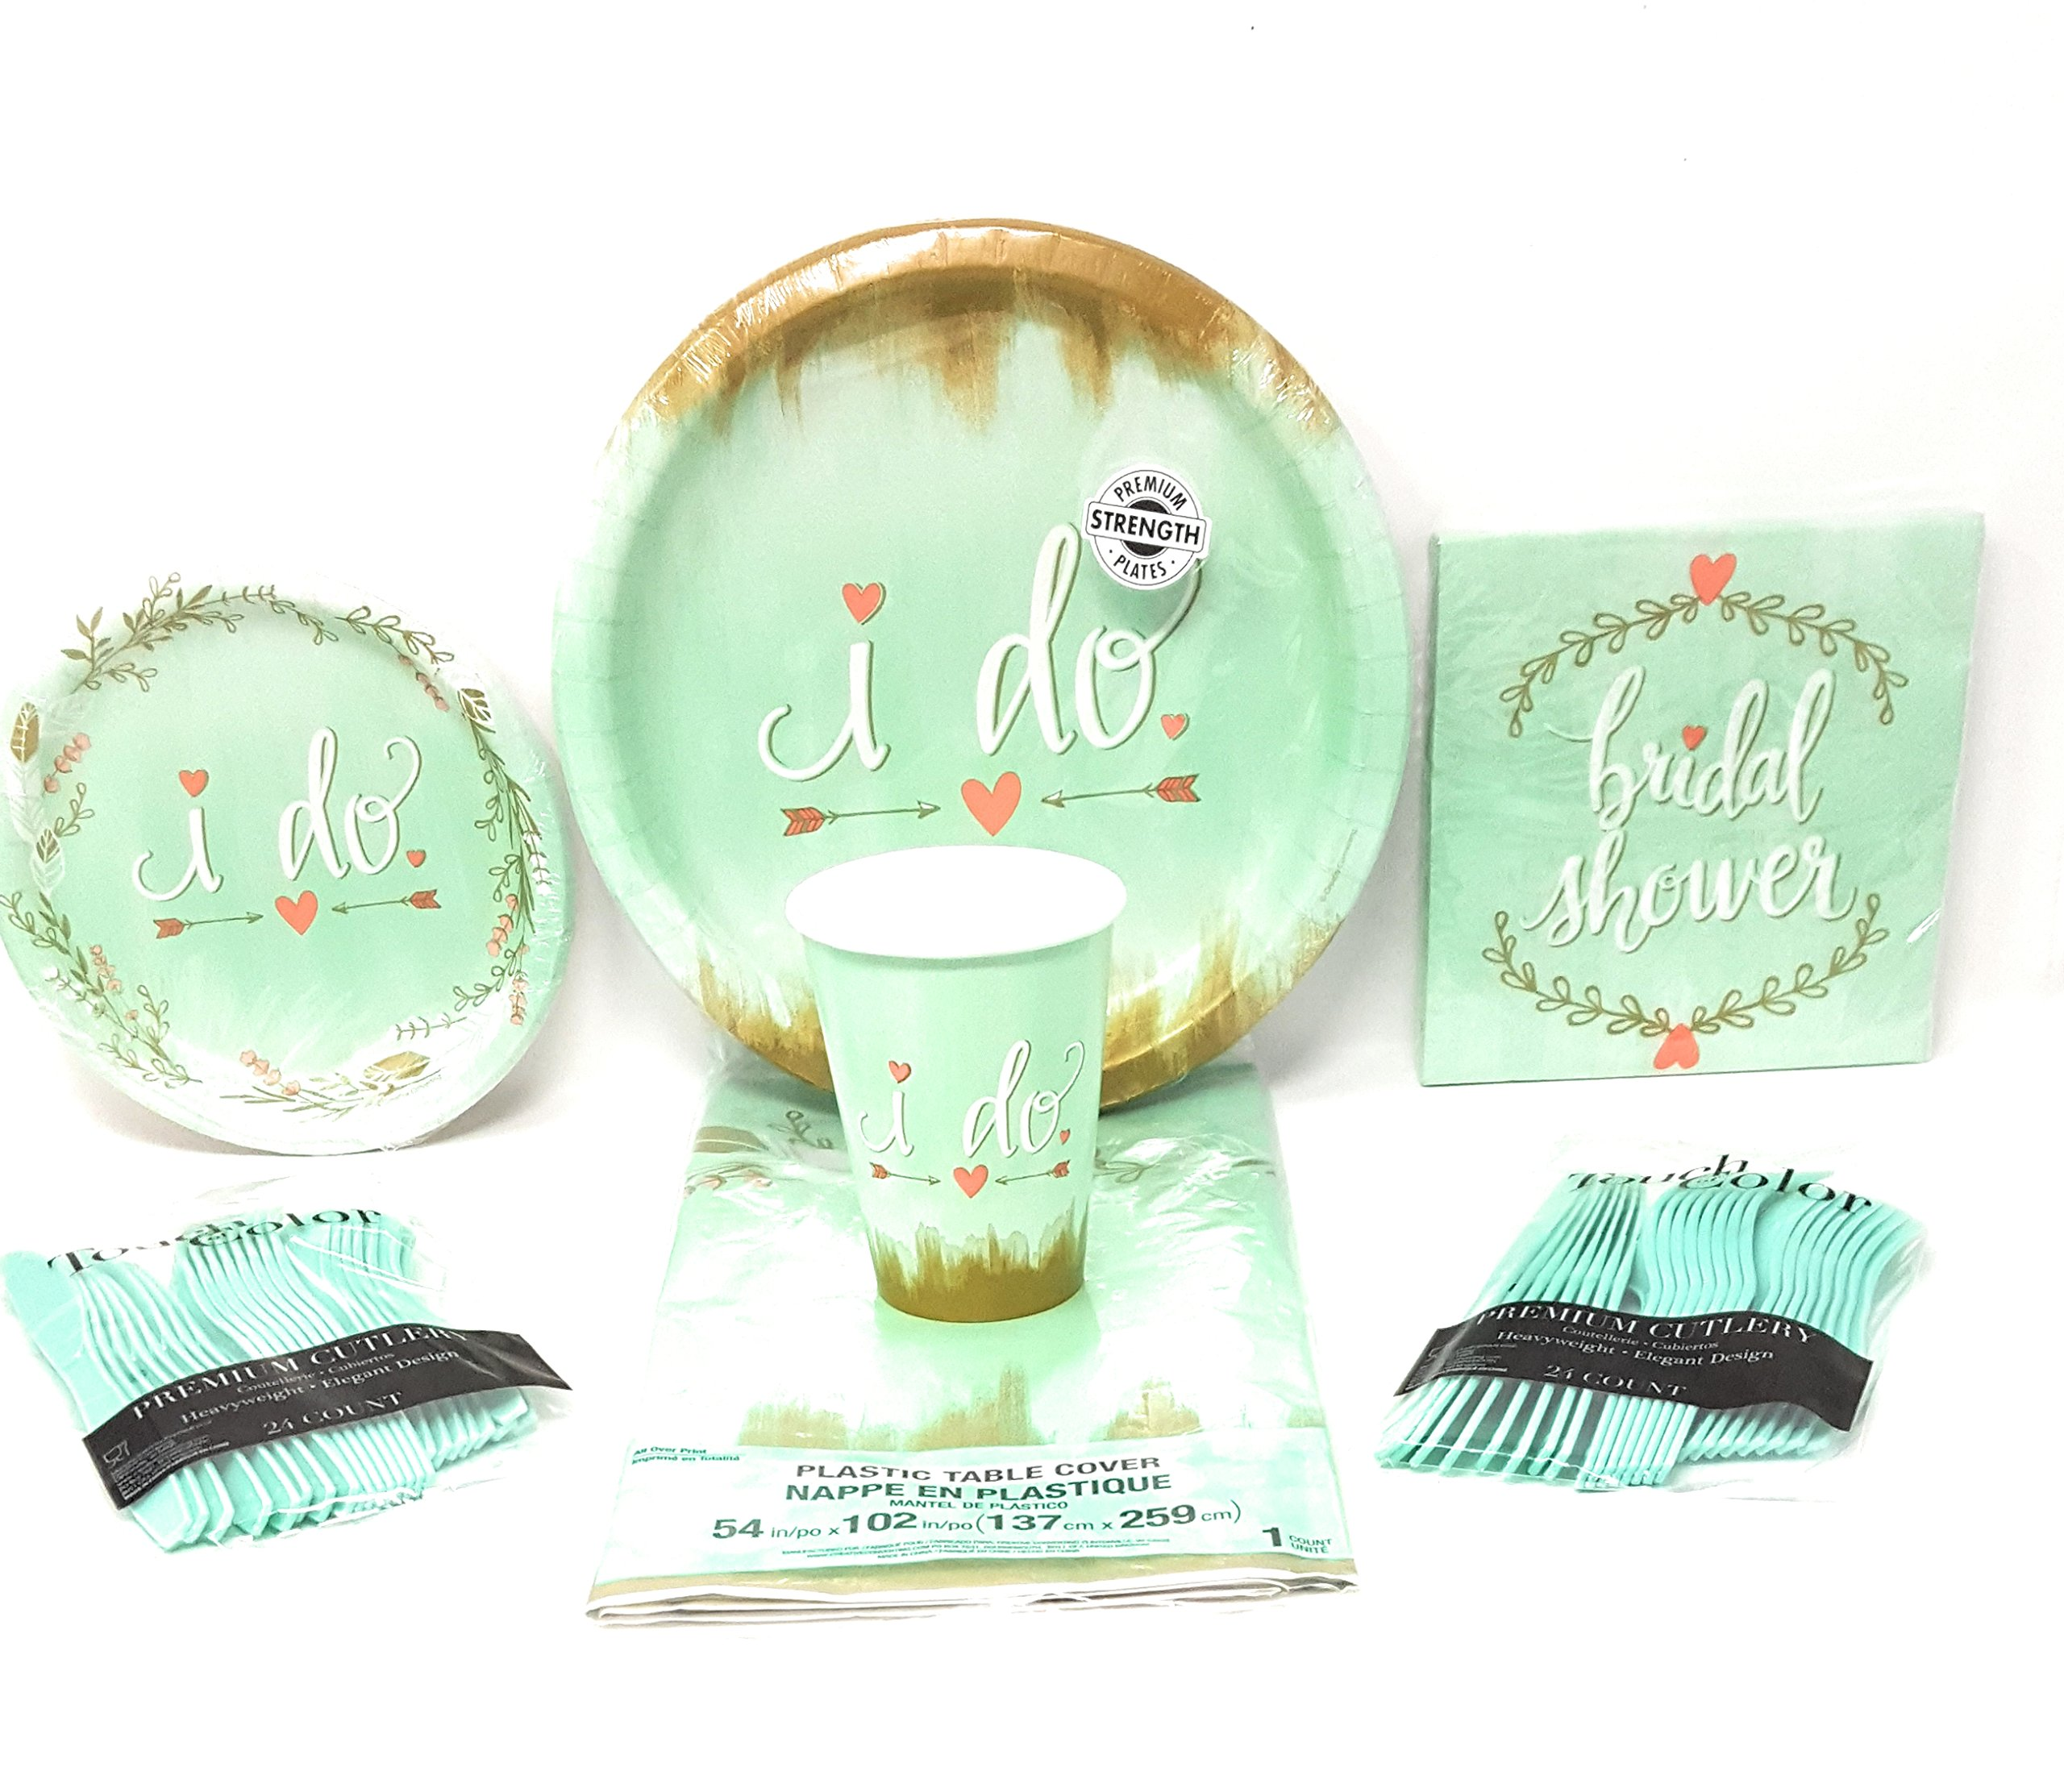 Bridal Shower Party Supplies (Mint to Be) 6-Piece Bundle, Disposable Plates, Napkins, Cups, Silverware,Table Cloth, Serves 16